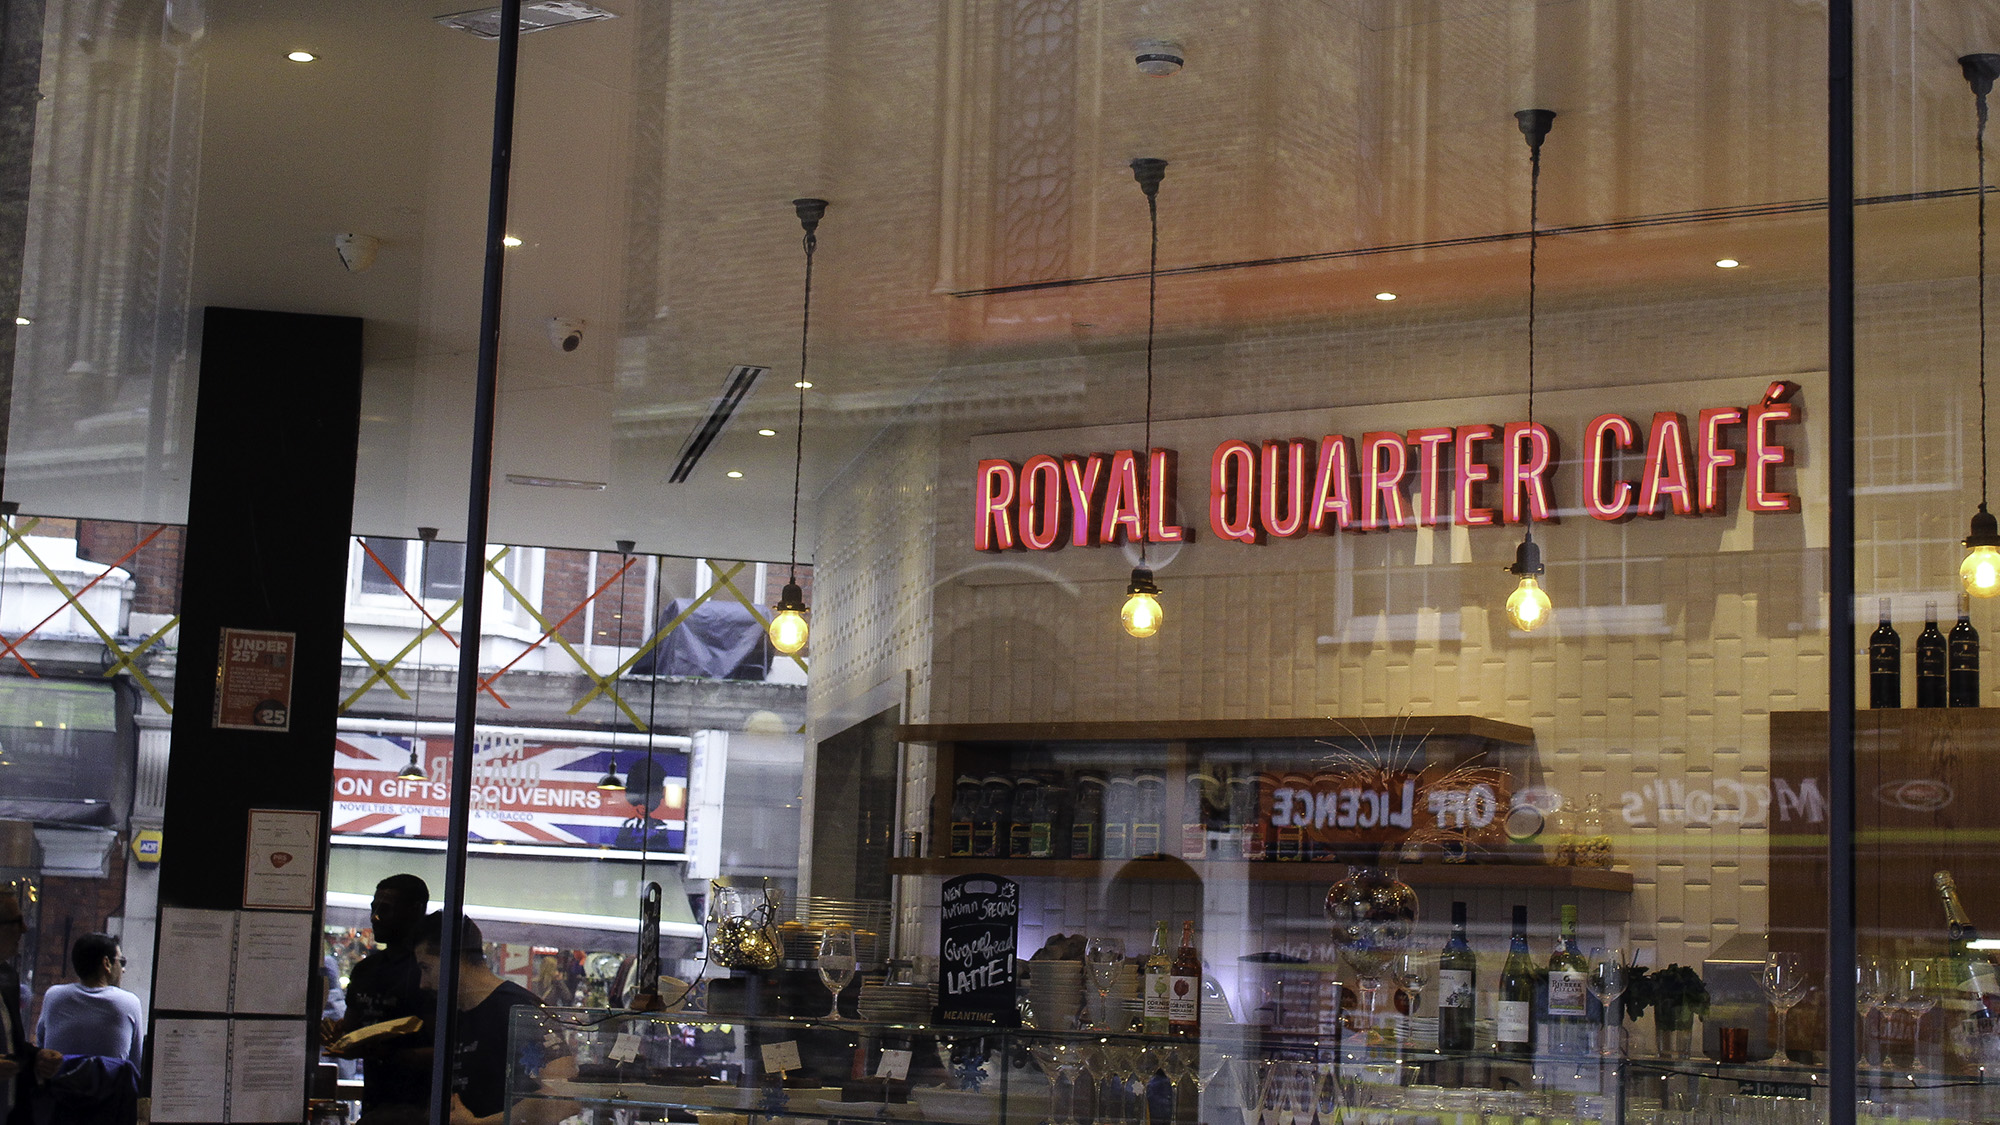 Royal Quarter Cafe London